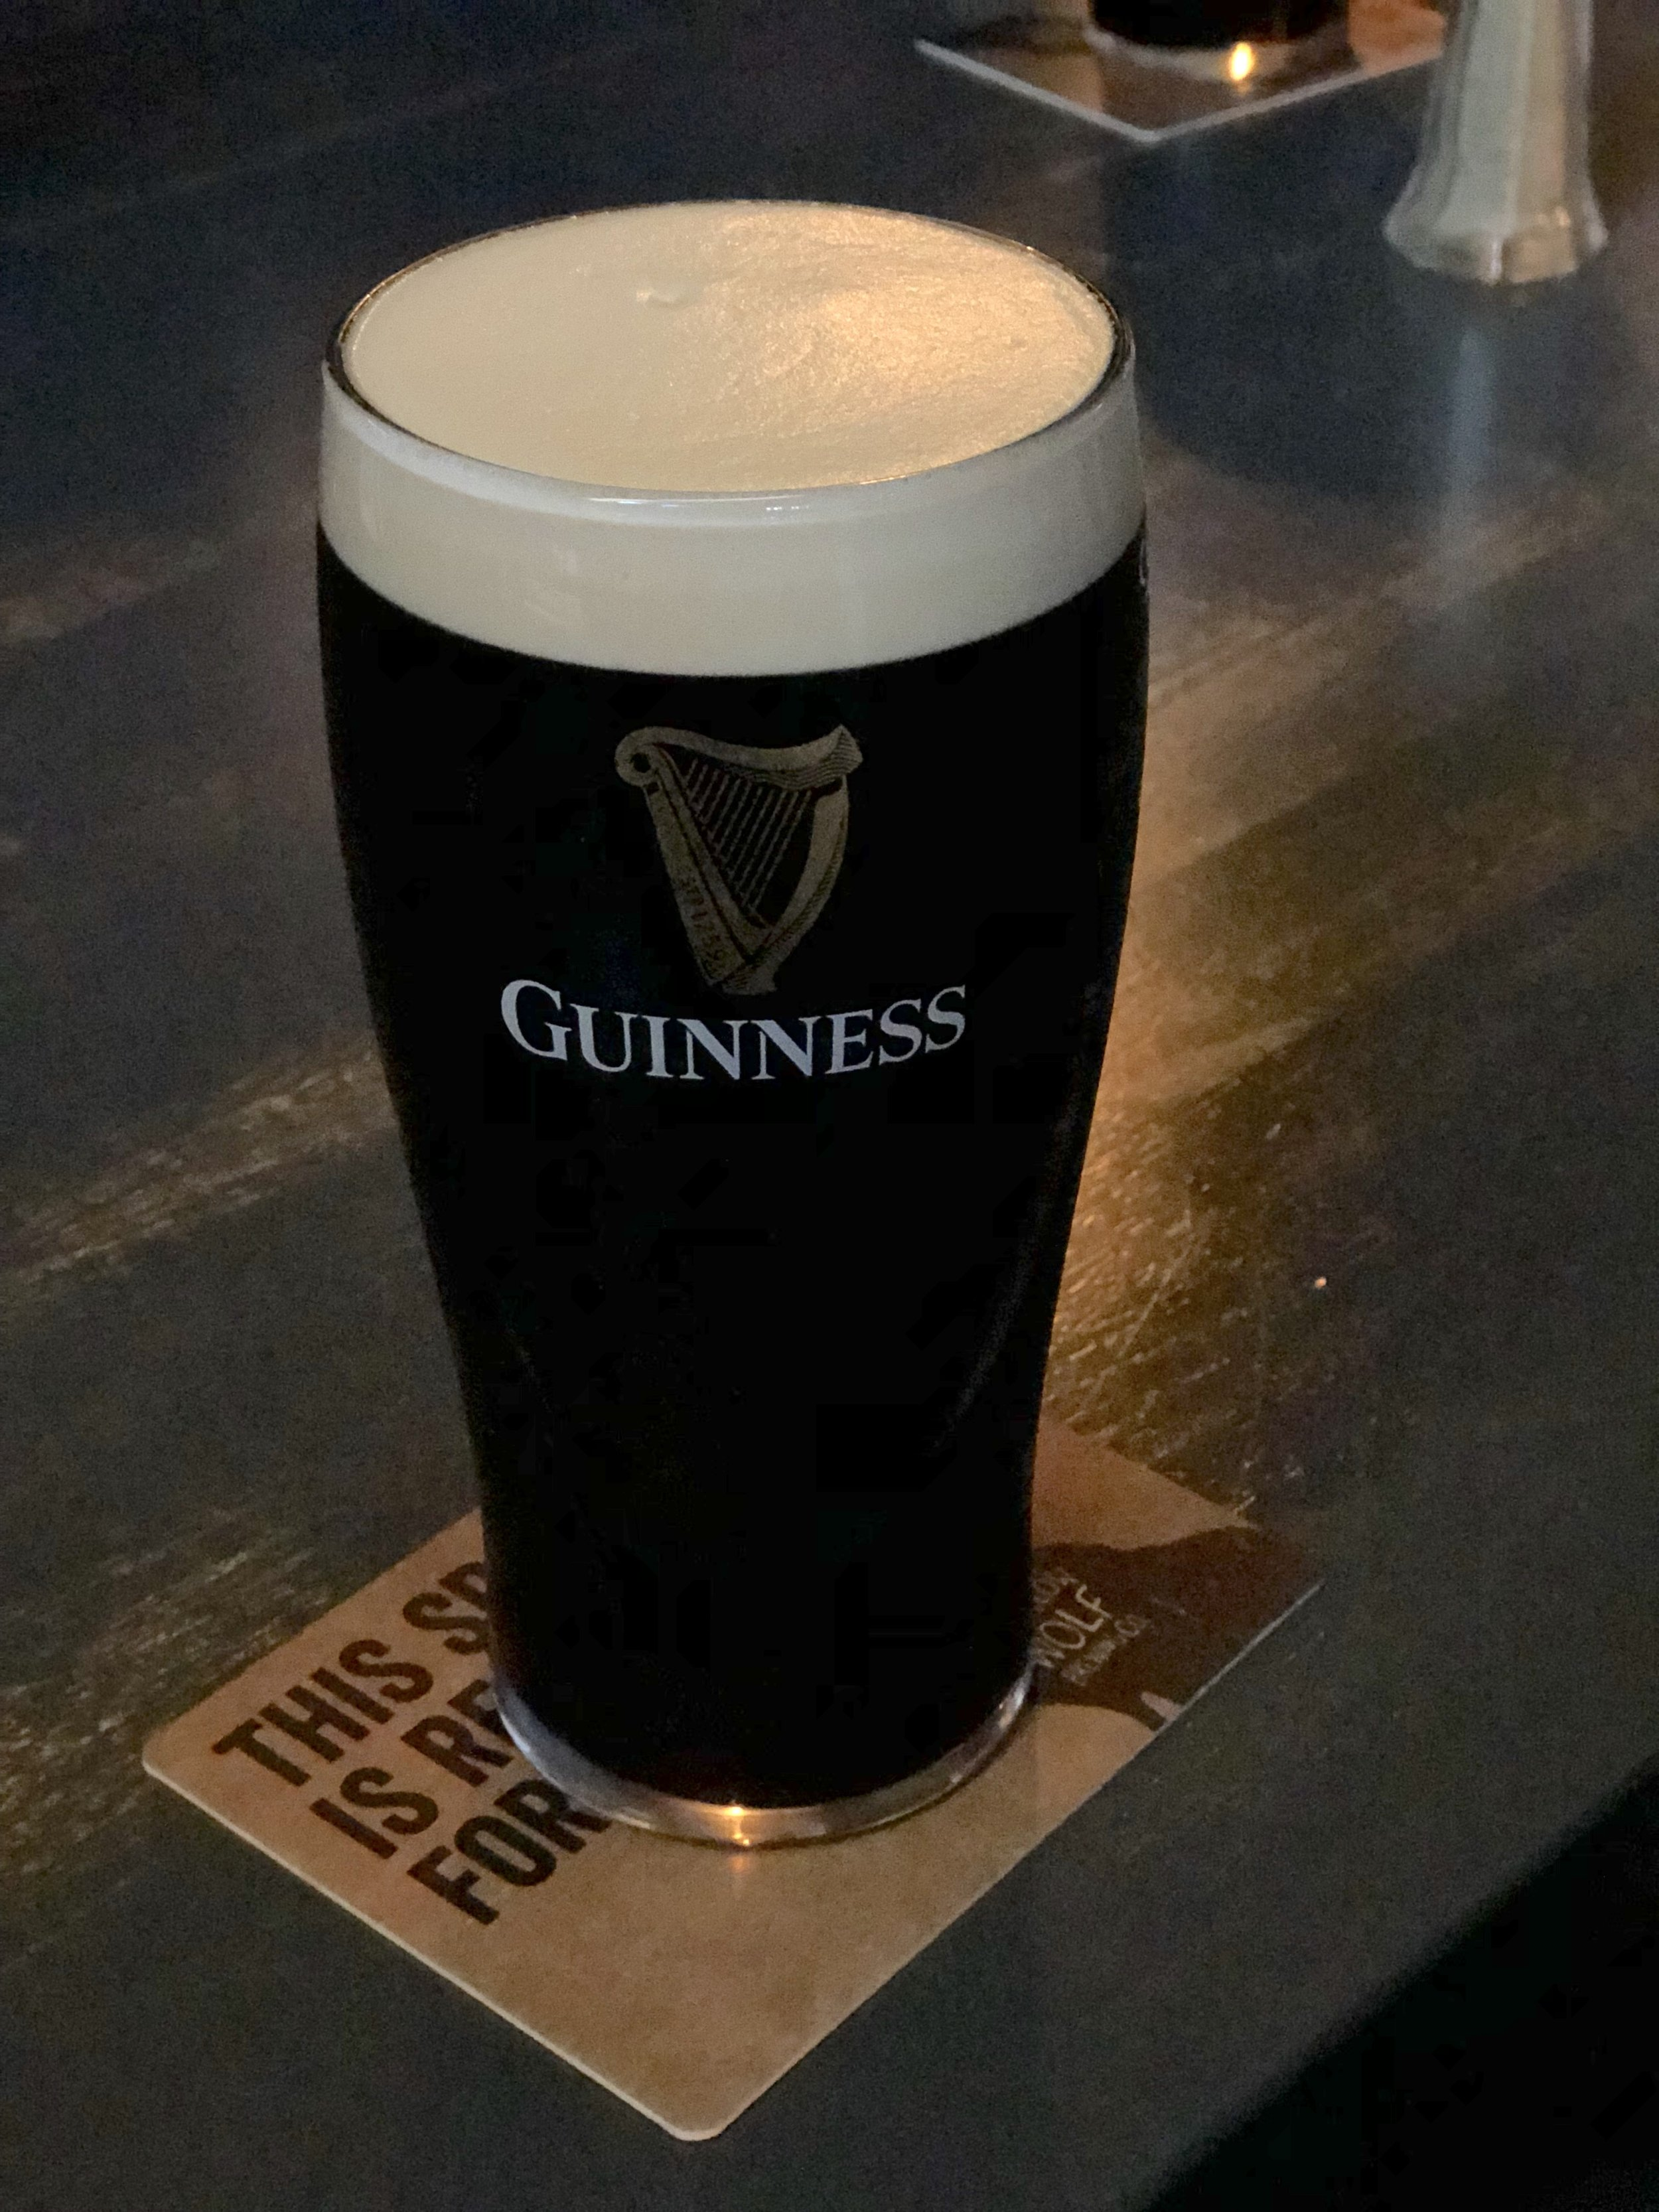 Can't have lunch in Ireland without Guinness.